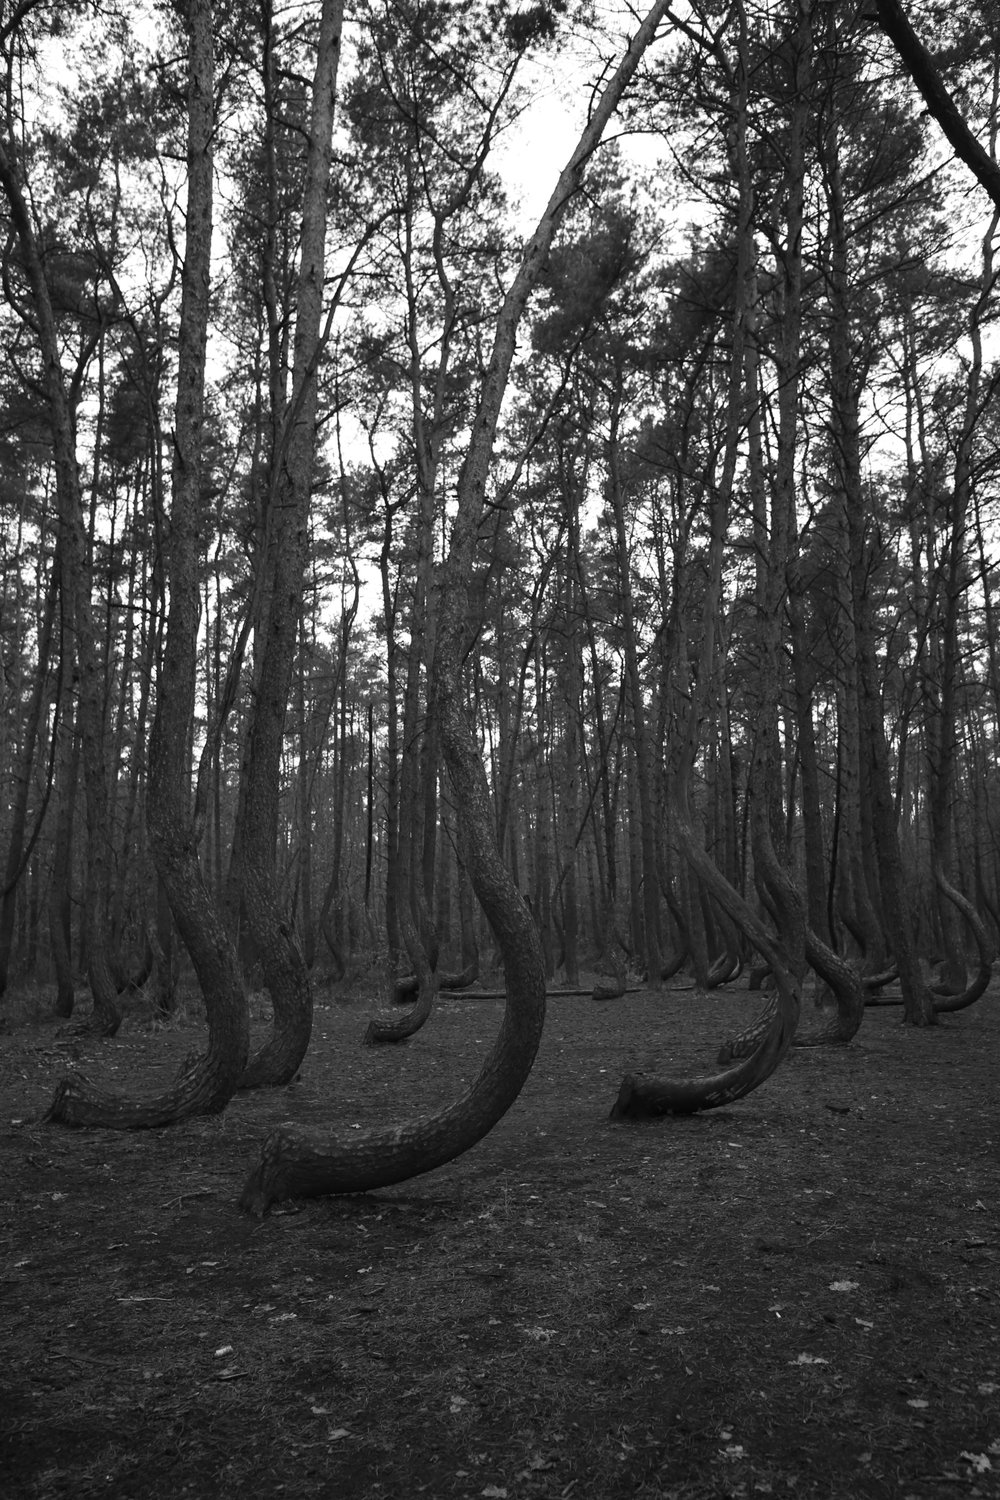 Crescent shaped pine trees in a forest of Poland.